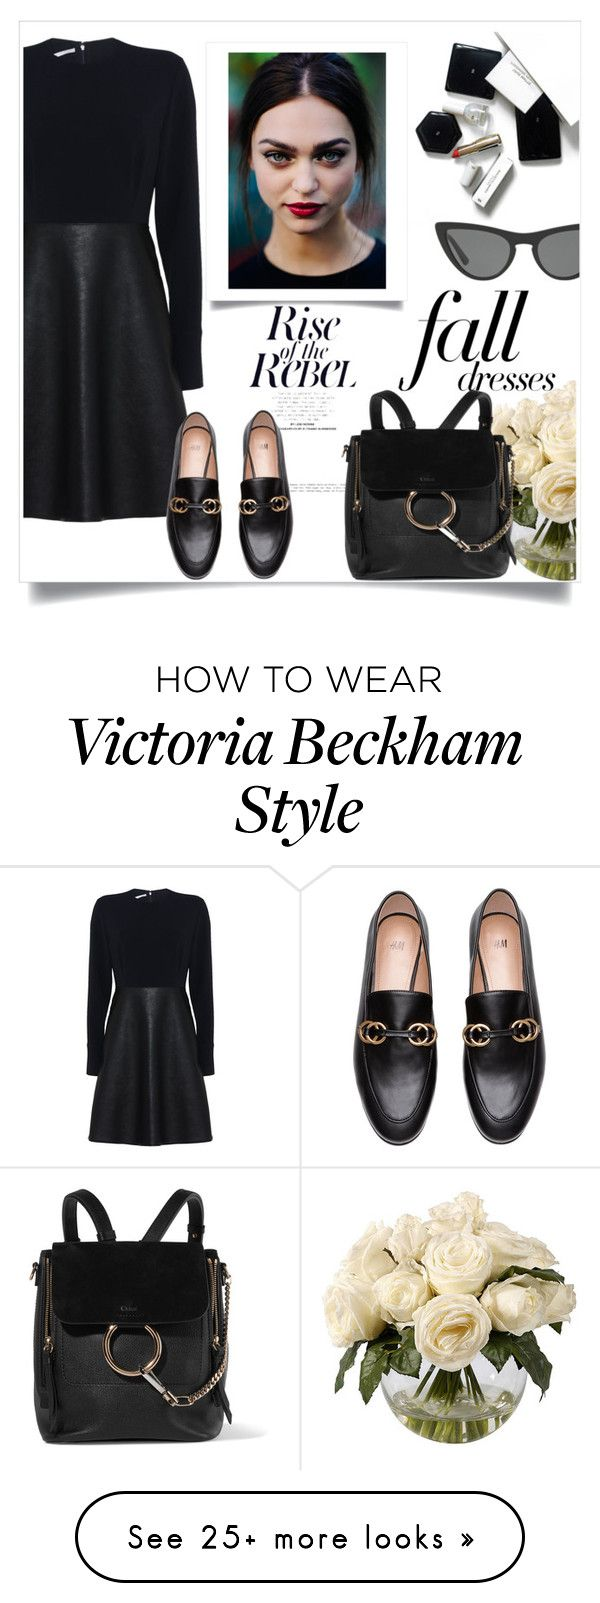 """""""black dress rebel"""" by theworldisatourfeet on Polyvore featuring Frontgate, STELLA McCARTNEY, H&M, Victoria, Victoria Beckham, Chloé, polyvoreeditorial and falldresses"""